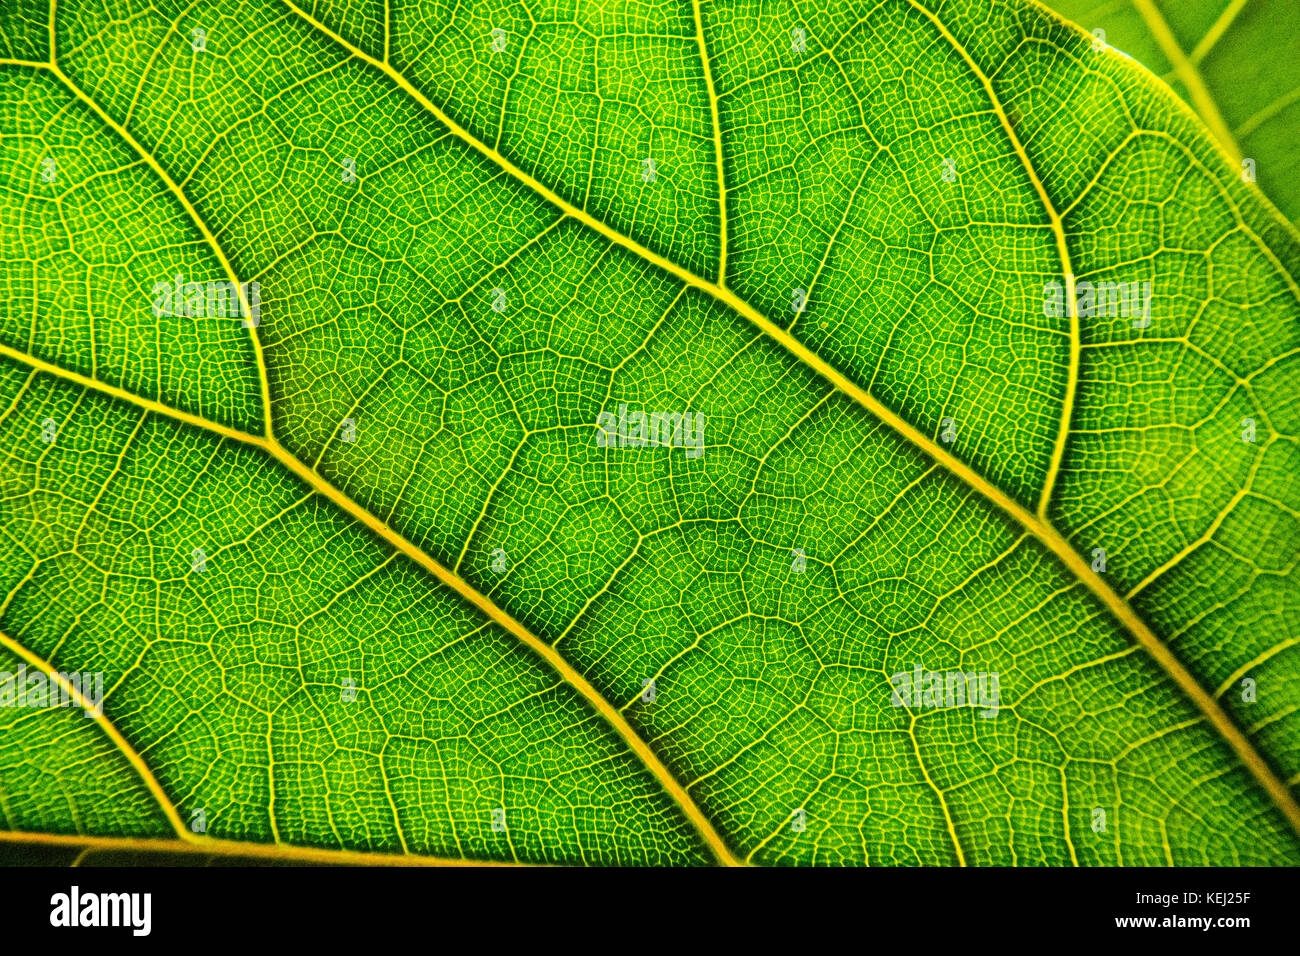 Green leaf in close-up, showing veins. - Stock Image